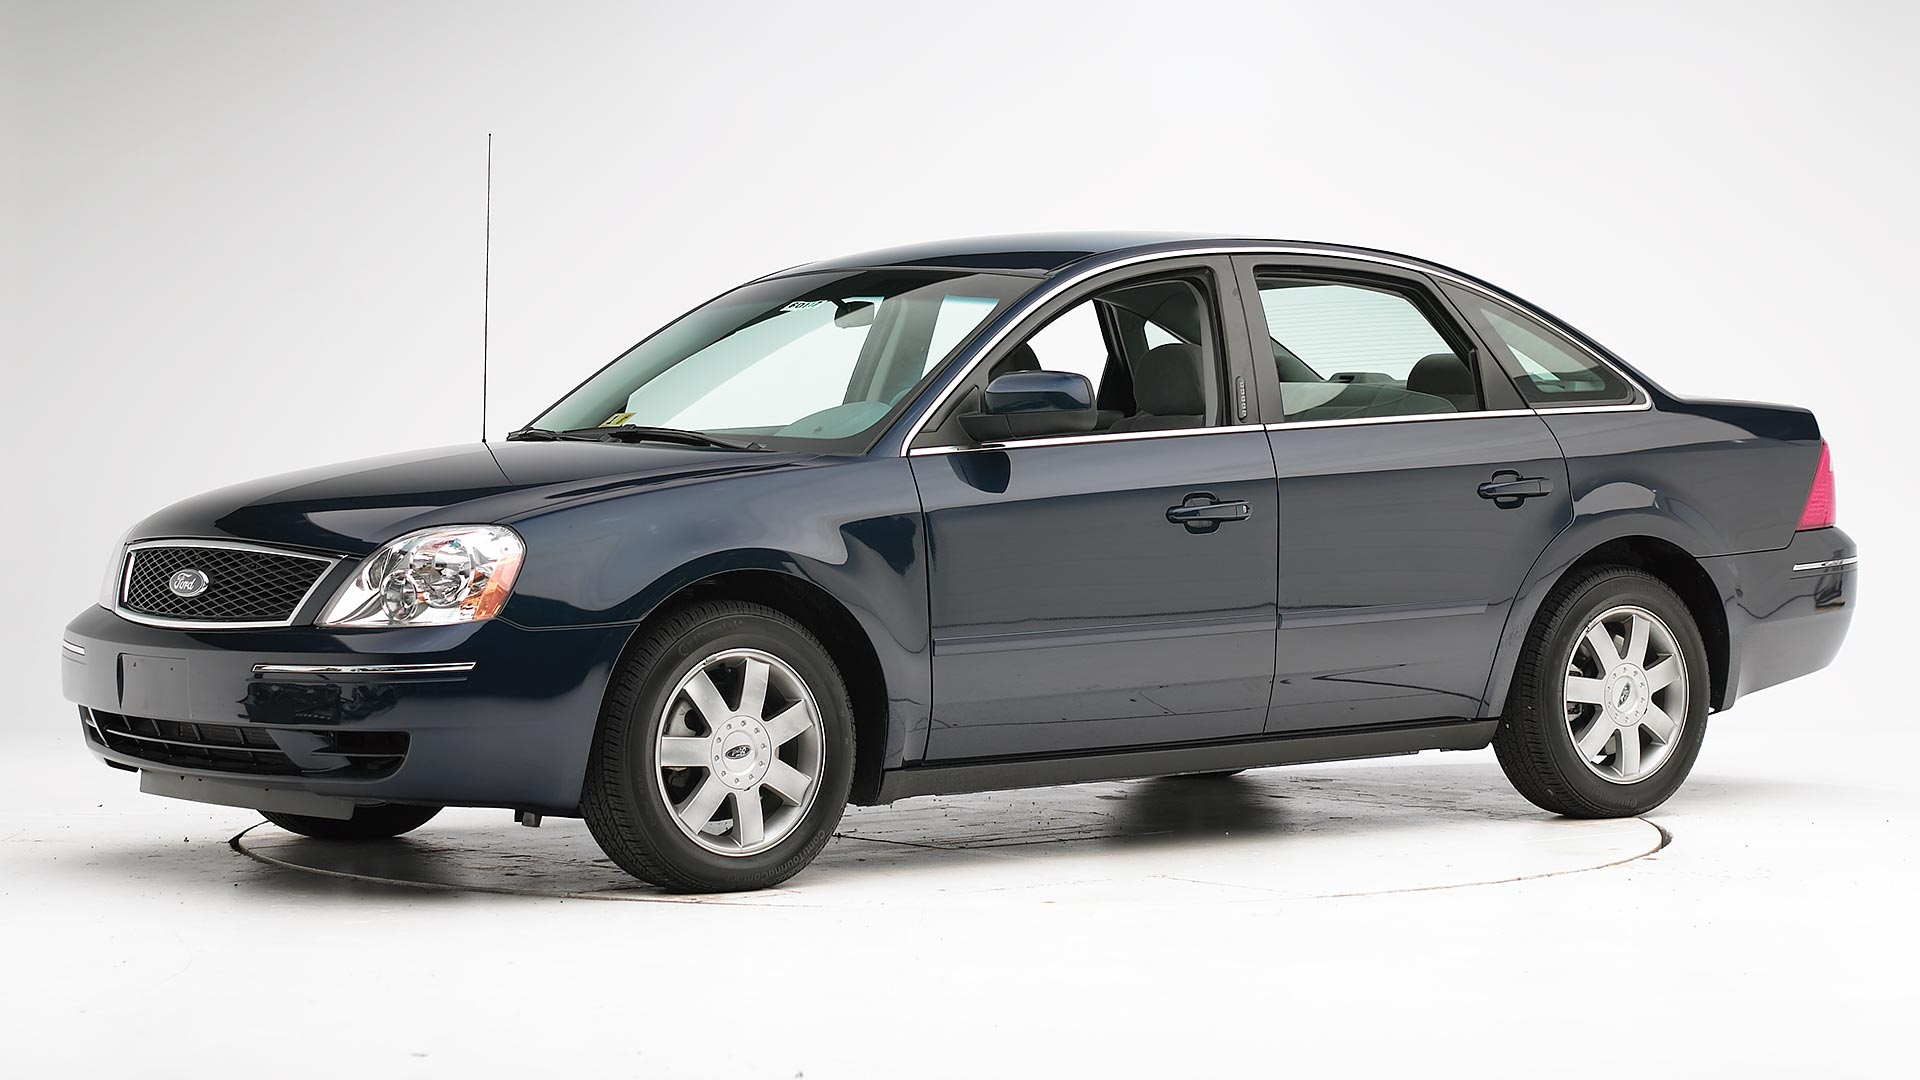 2006 Ford Five Hundred 4-door sedan